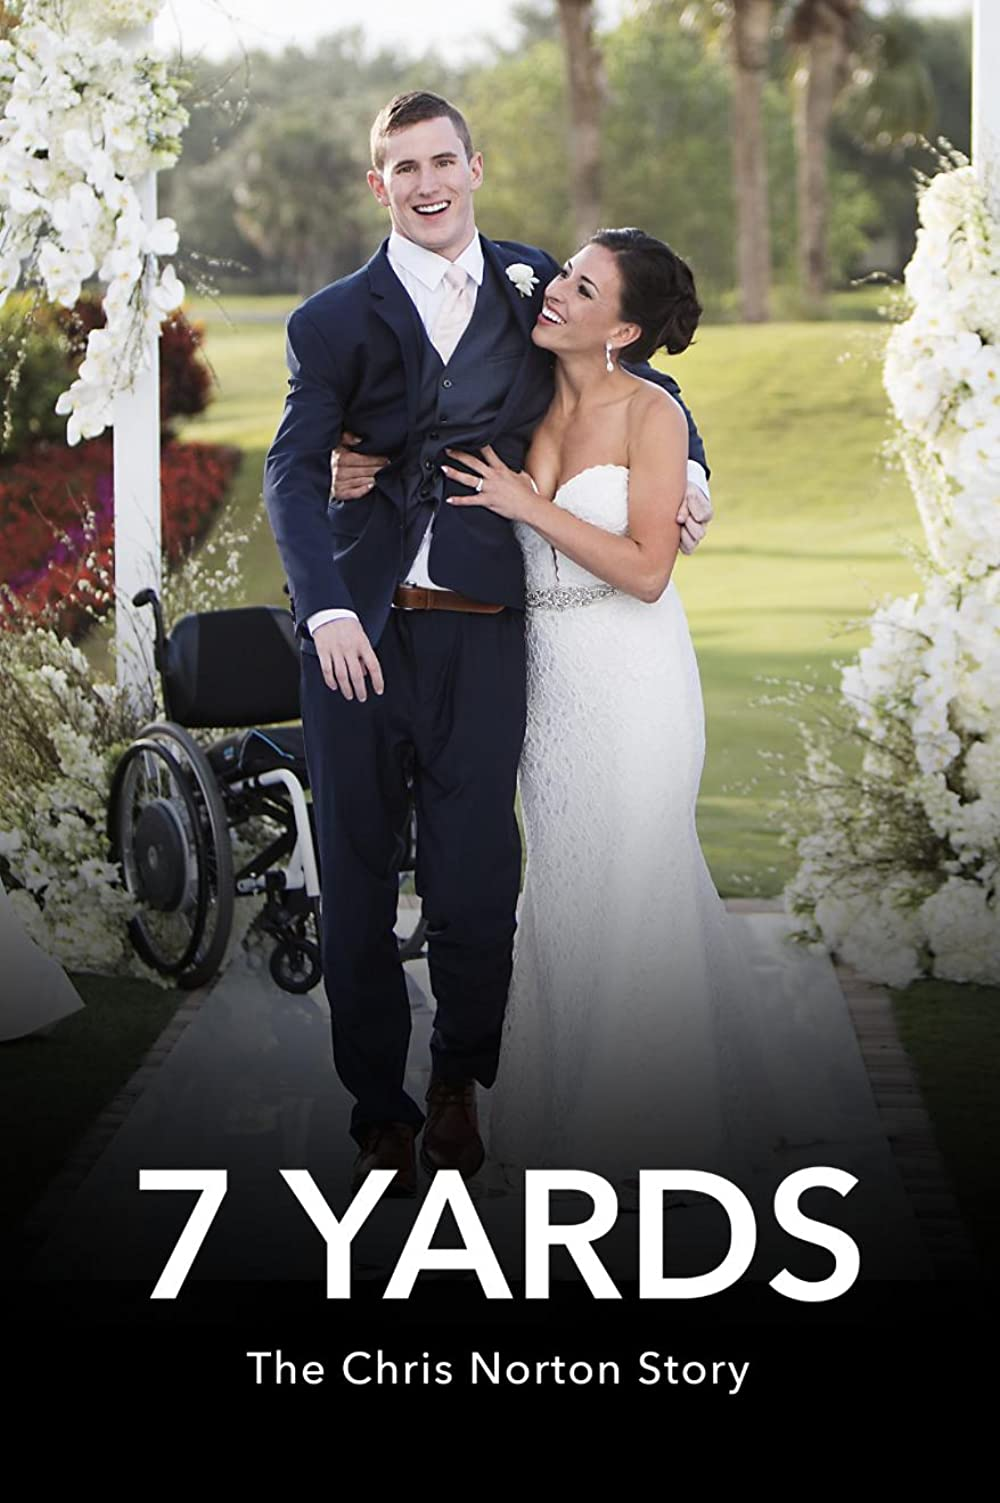 Watch 7 Yards: The Chris Norton Story Online